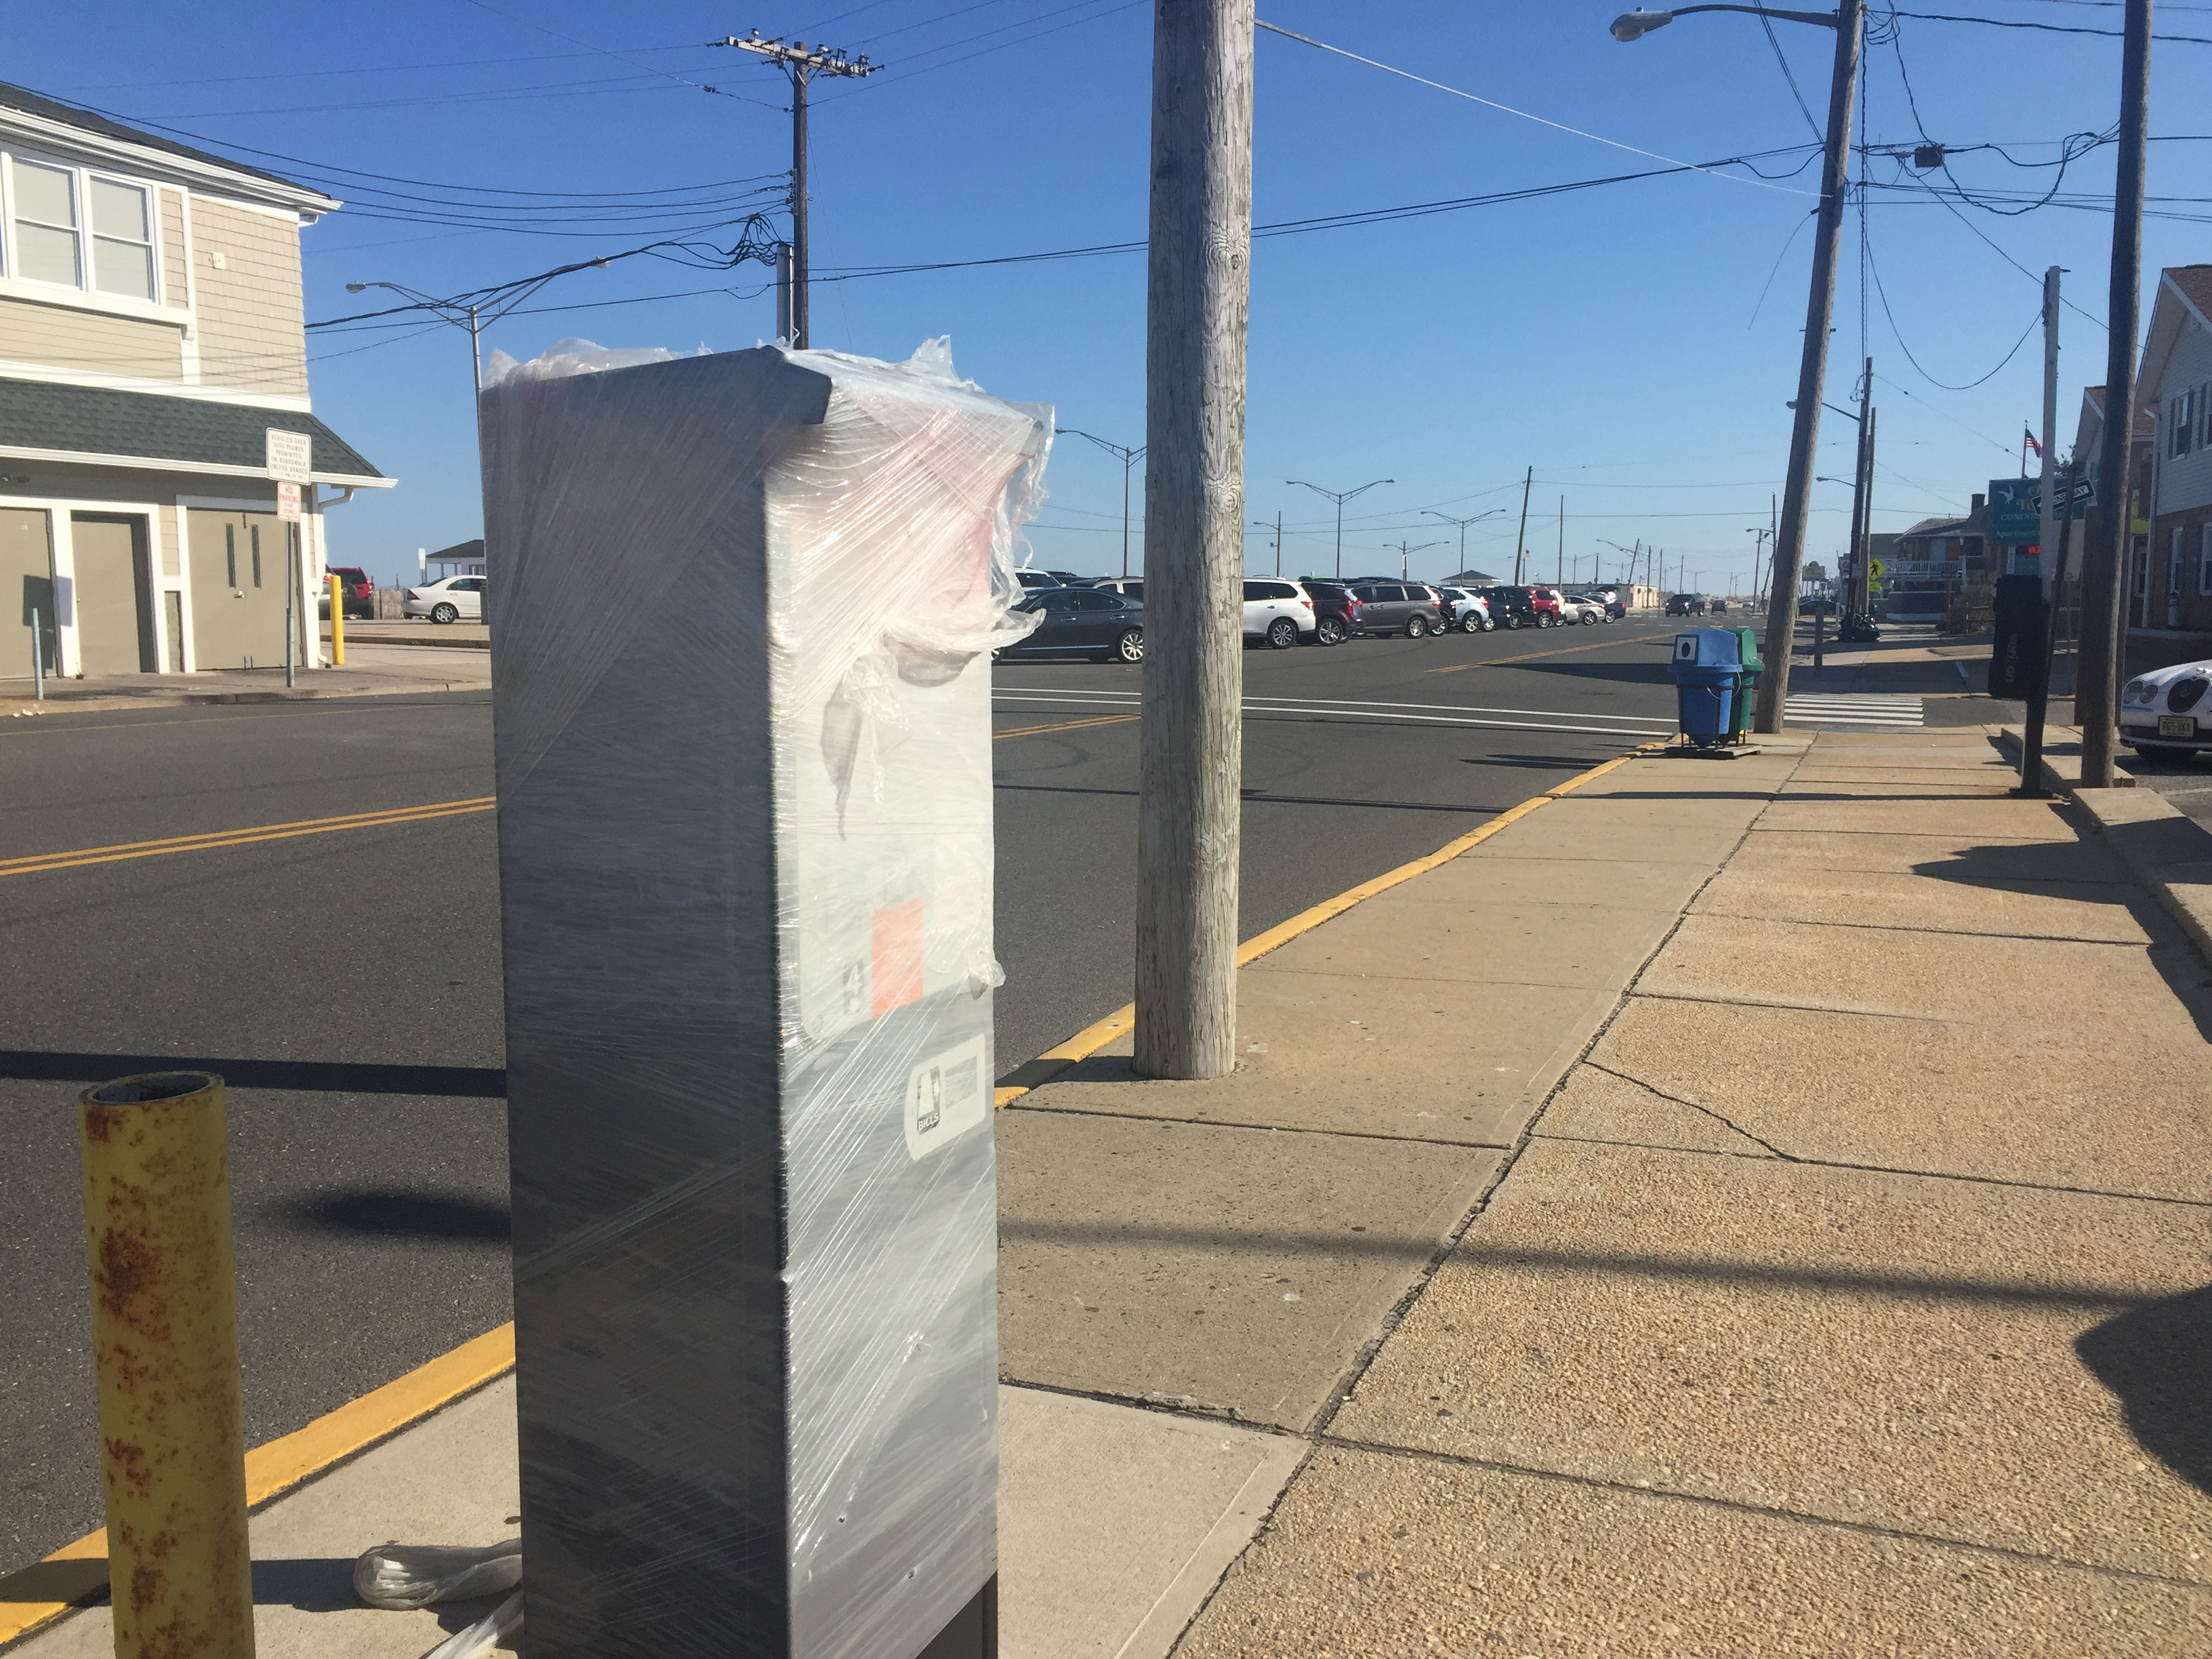 A parking kiosk near Stockton Avenue in Seaside Park. (Photo: Daniel Nee)